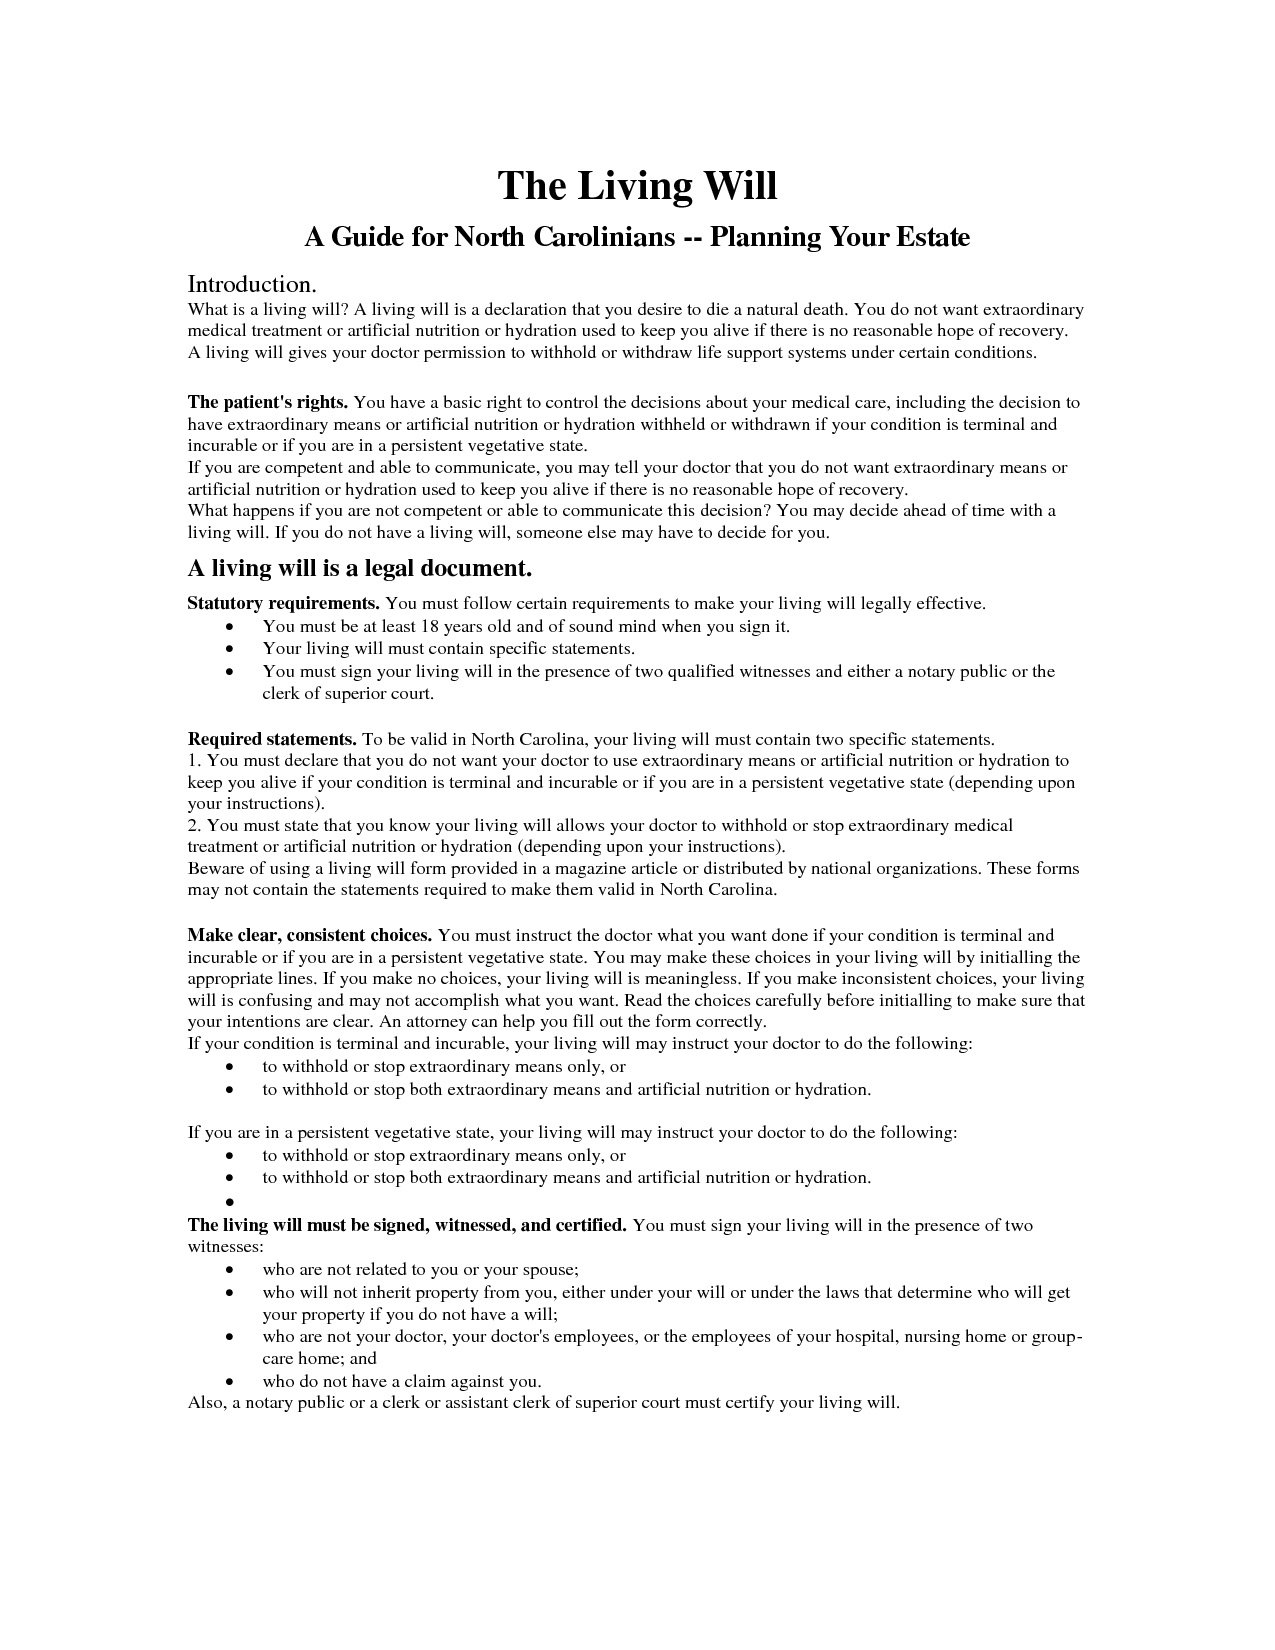 011 Free Living Will Forms To Print Template Sample Form Templates - Free Printable Living Will Forms Washington State